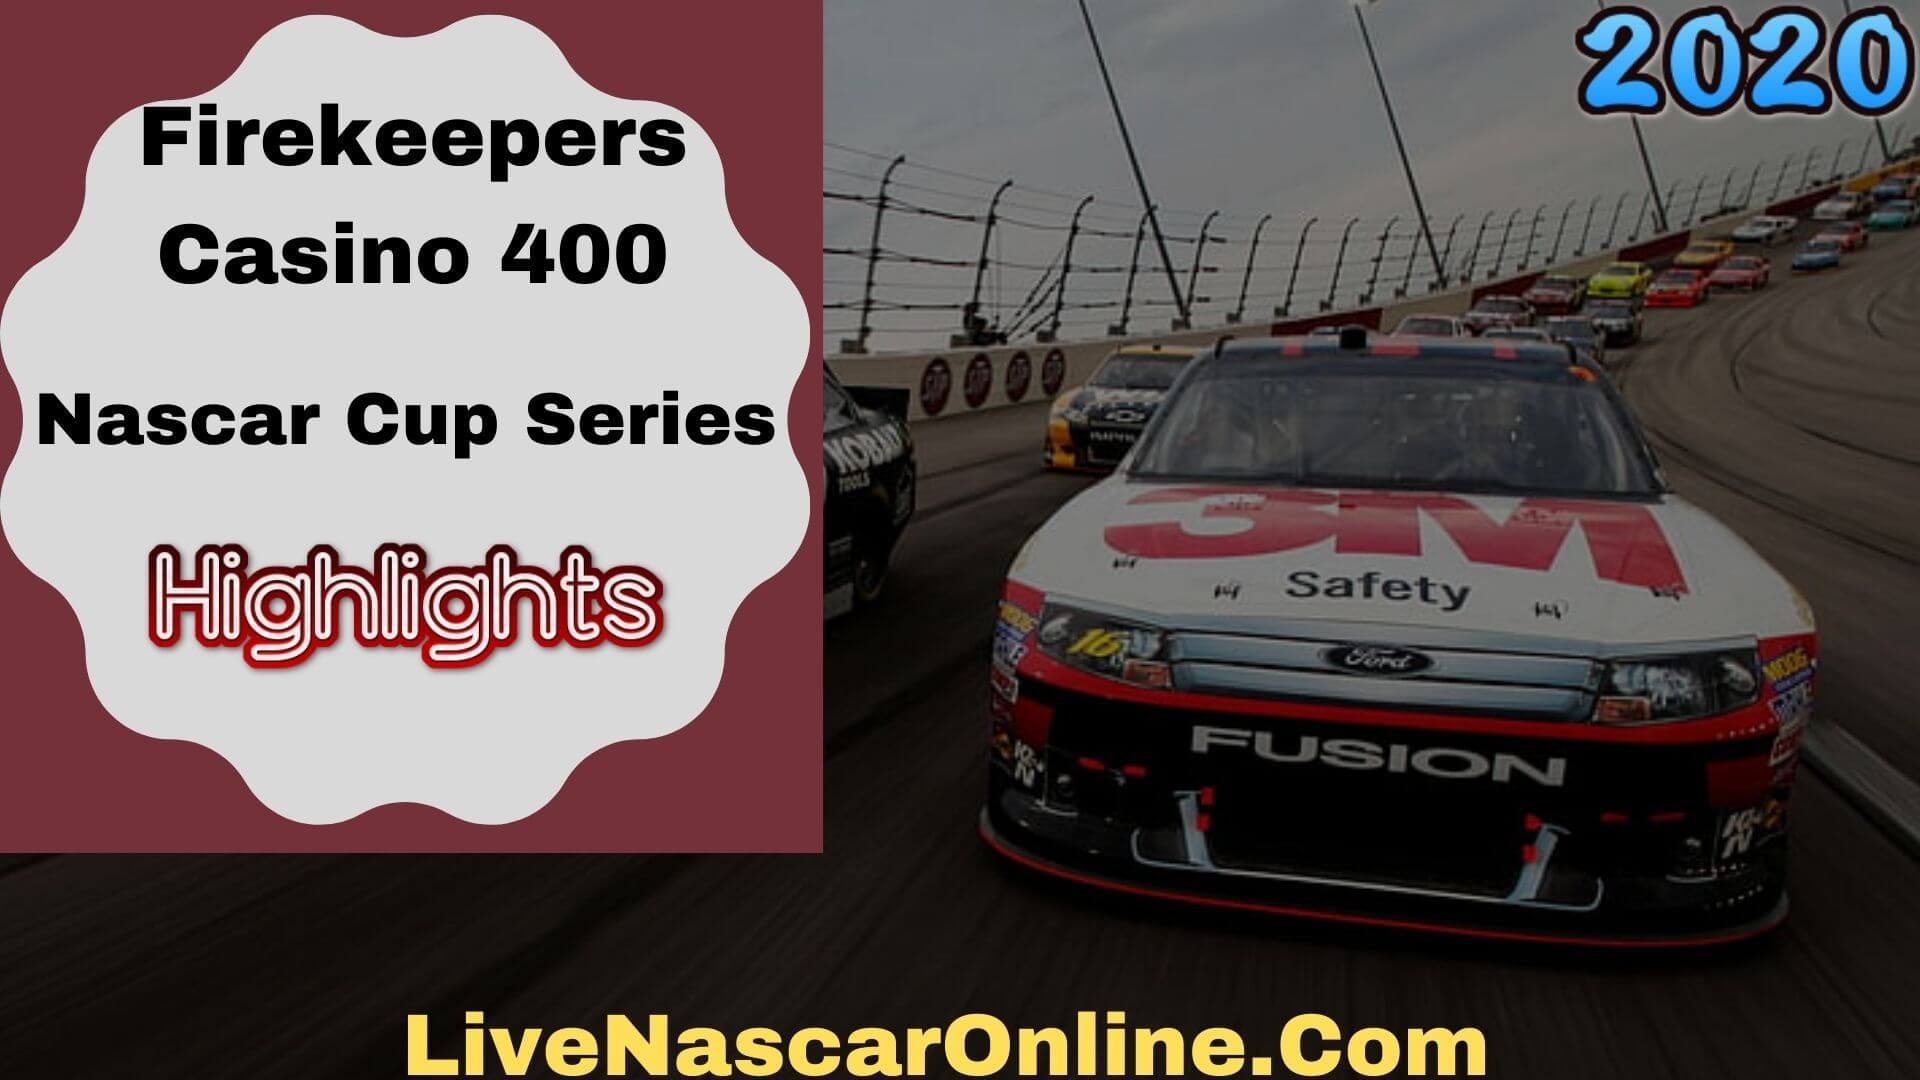 Firekeepers Casino 400 Nascar Cup Series Highlights 2020